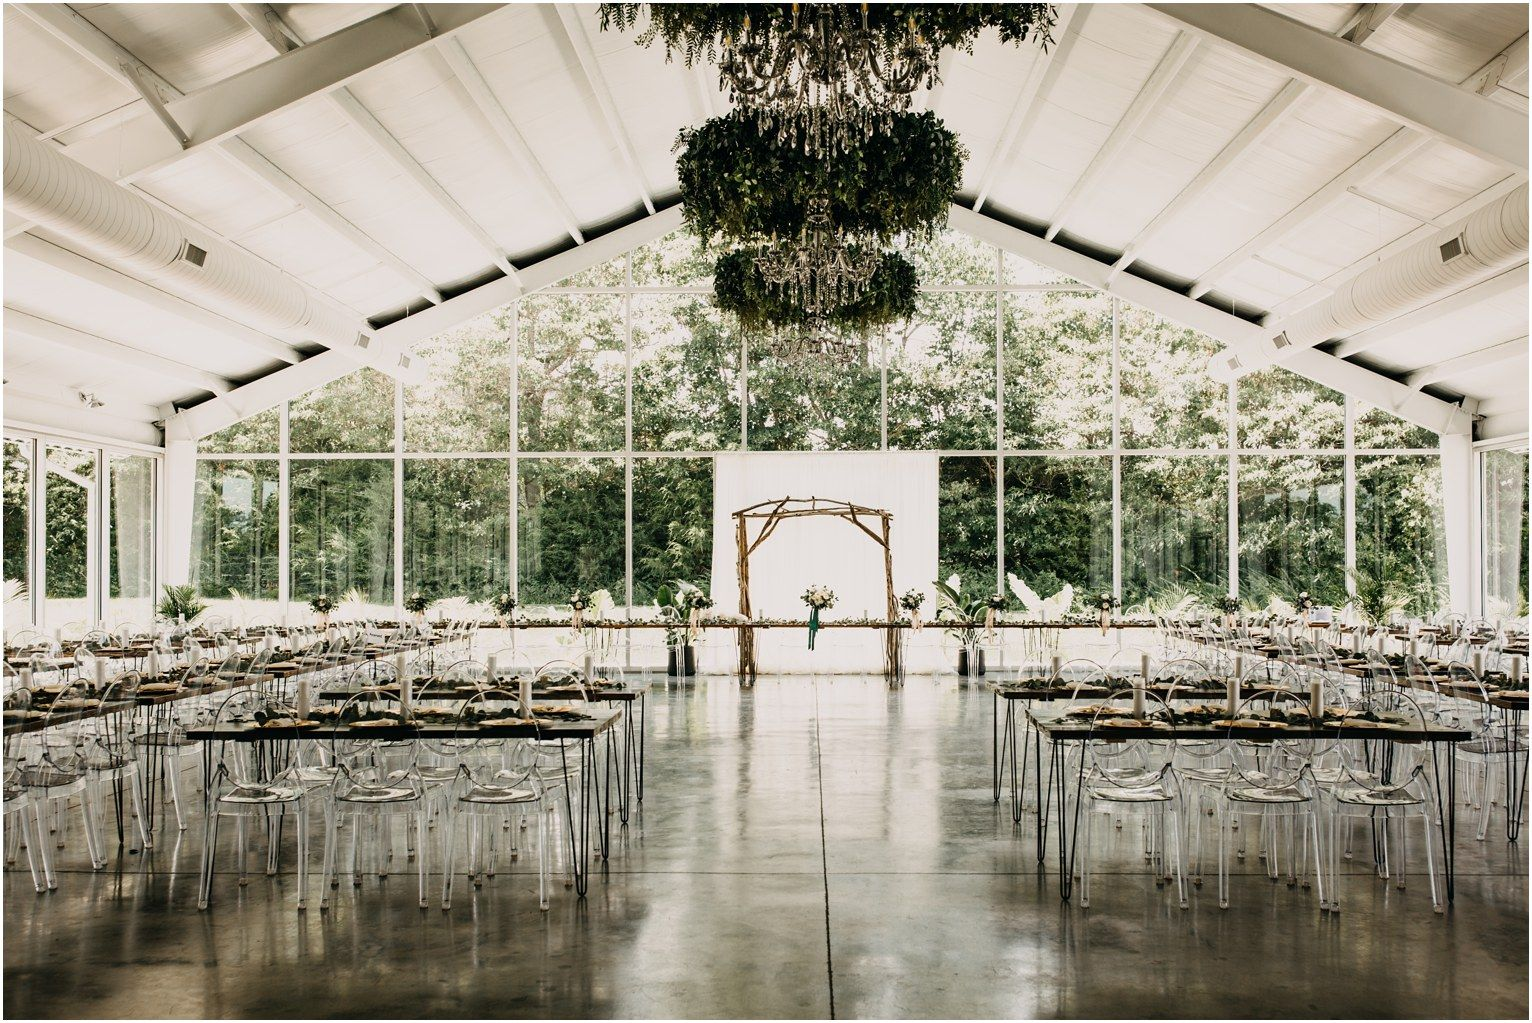 Kaylee Blake Greenhouse Two Rivers Springfield Mo Wedding Photographer Inner Images Photography Grow Lights For Plants Road Trip To Colorado Greenhouse Wedding